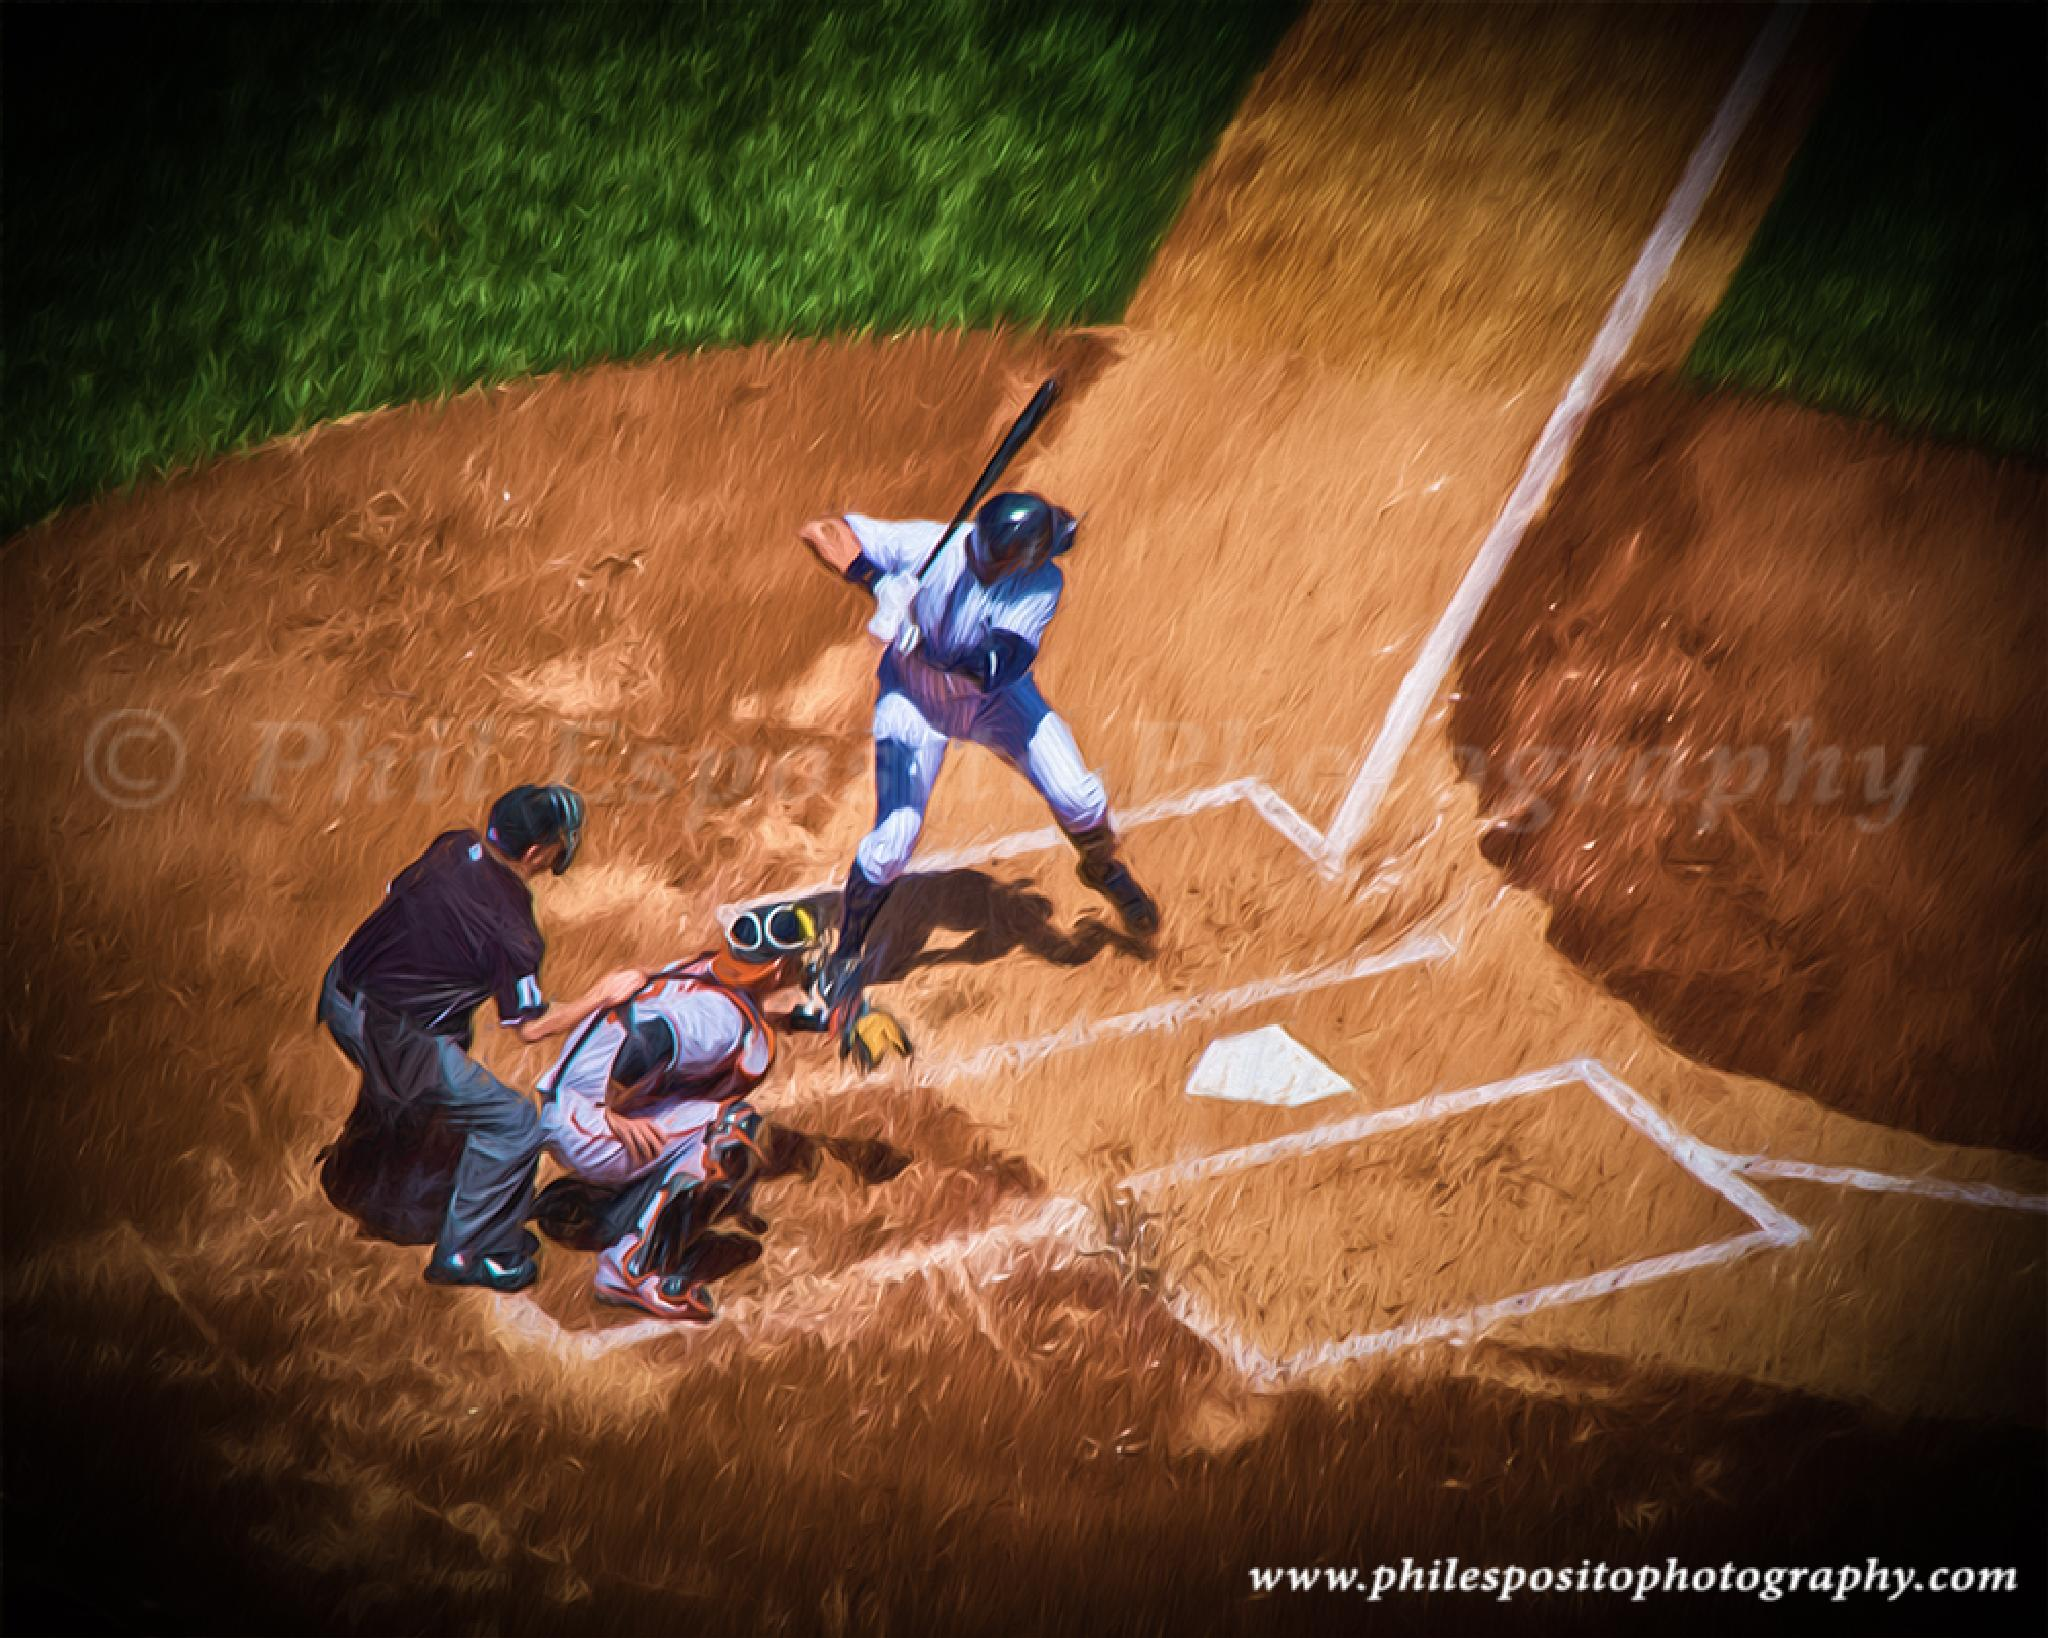 A Rod at the plate in oil by Phil Esposito